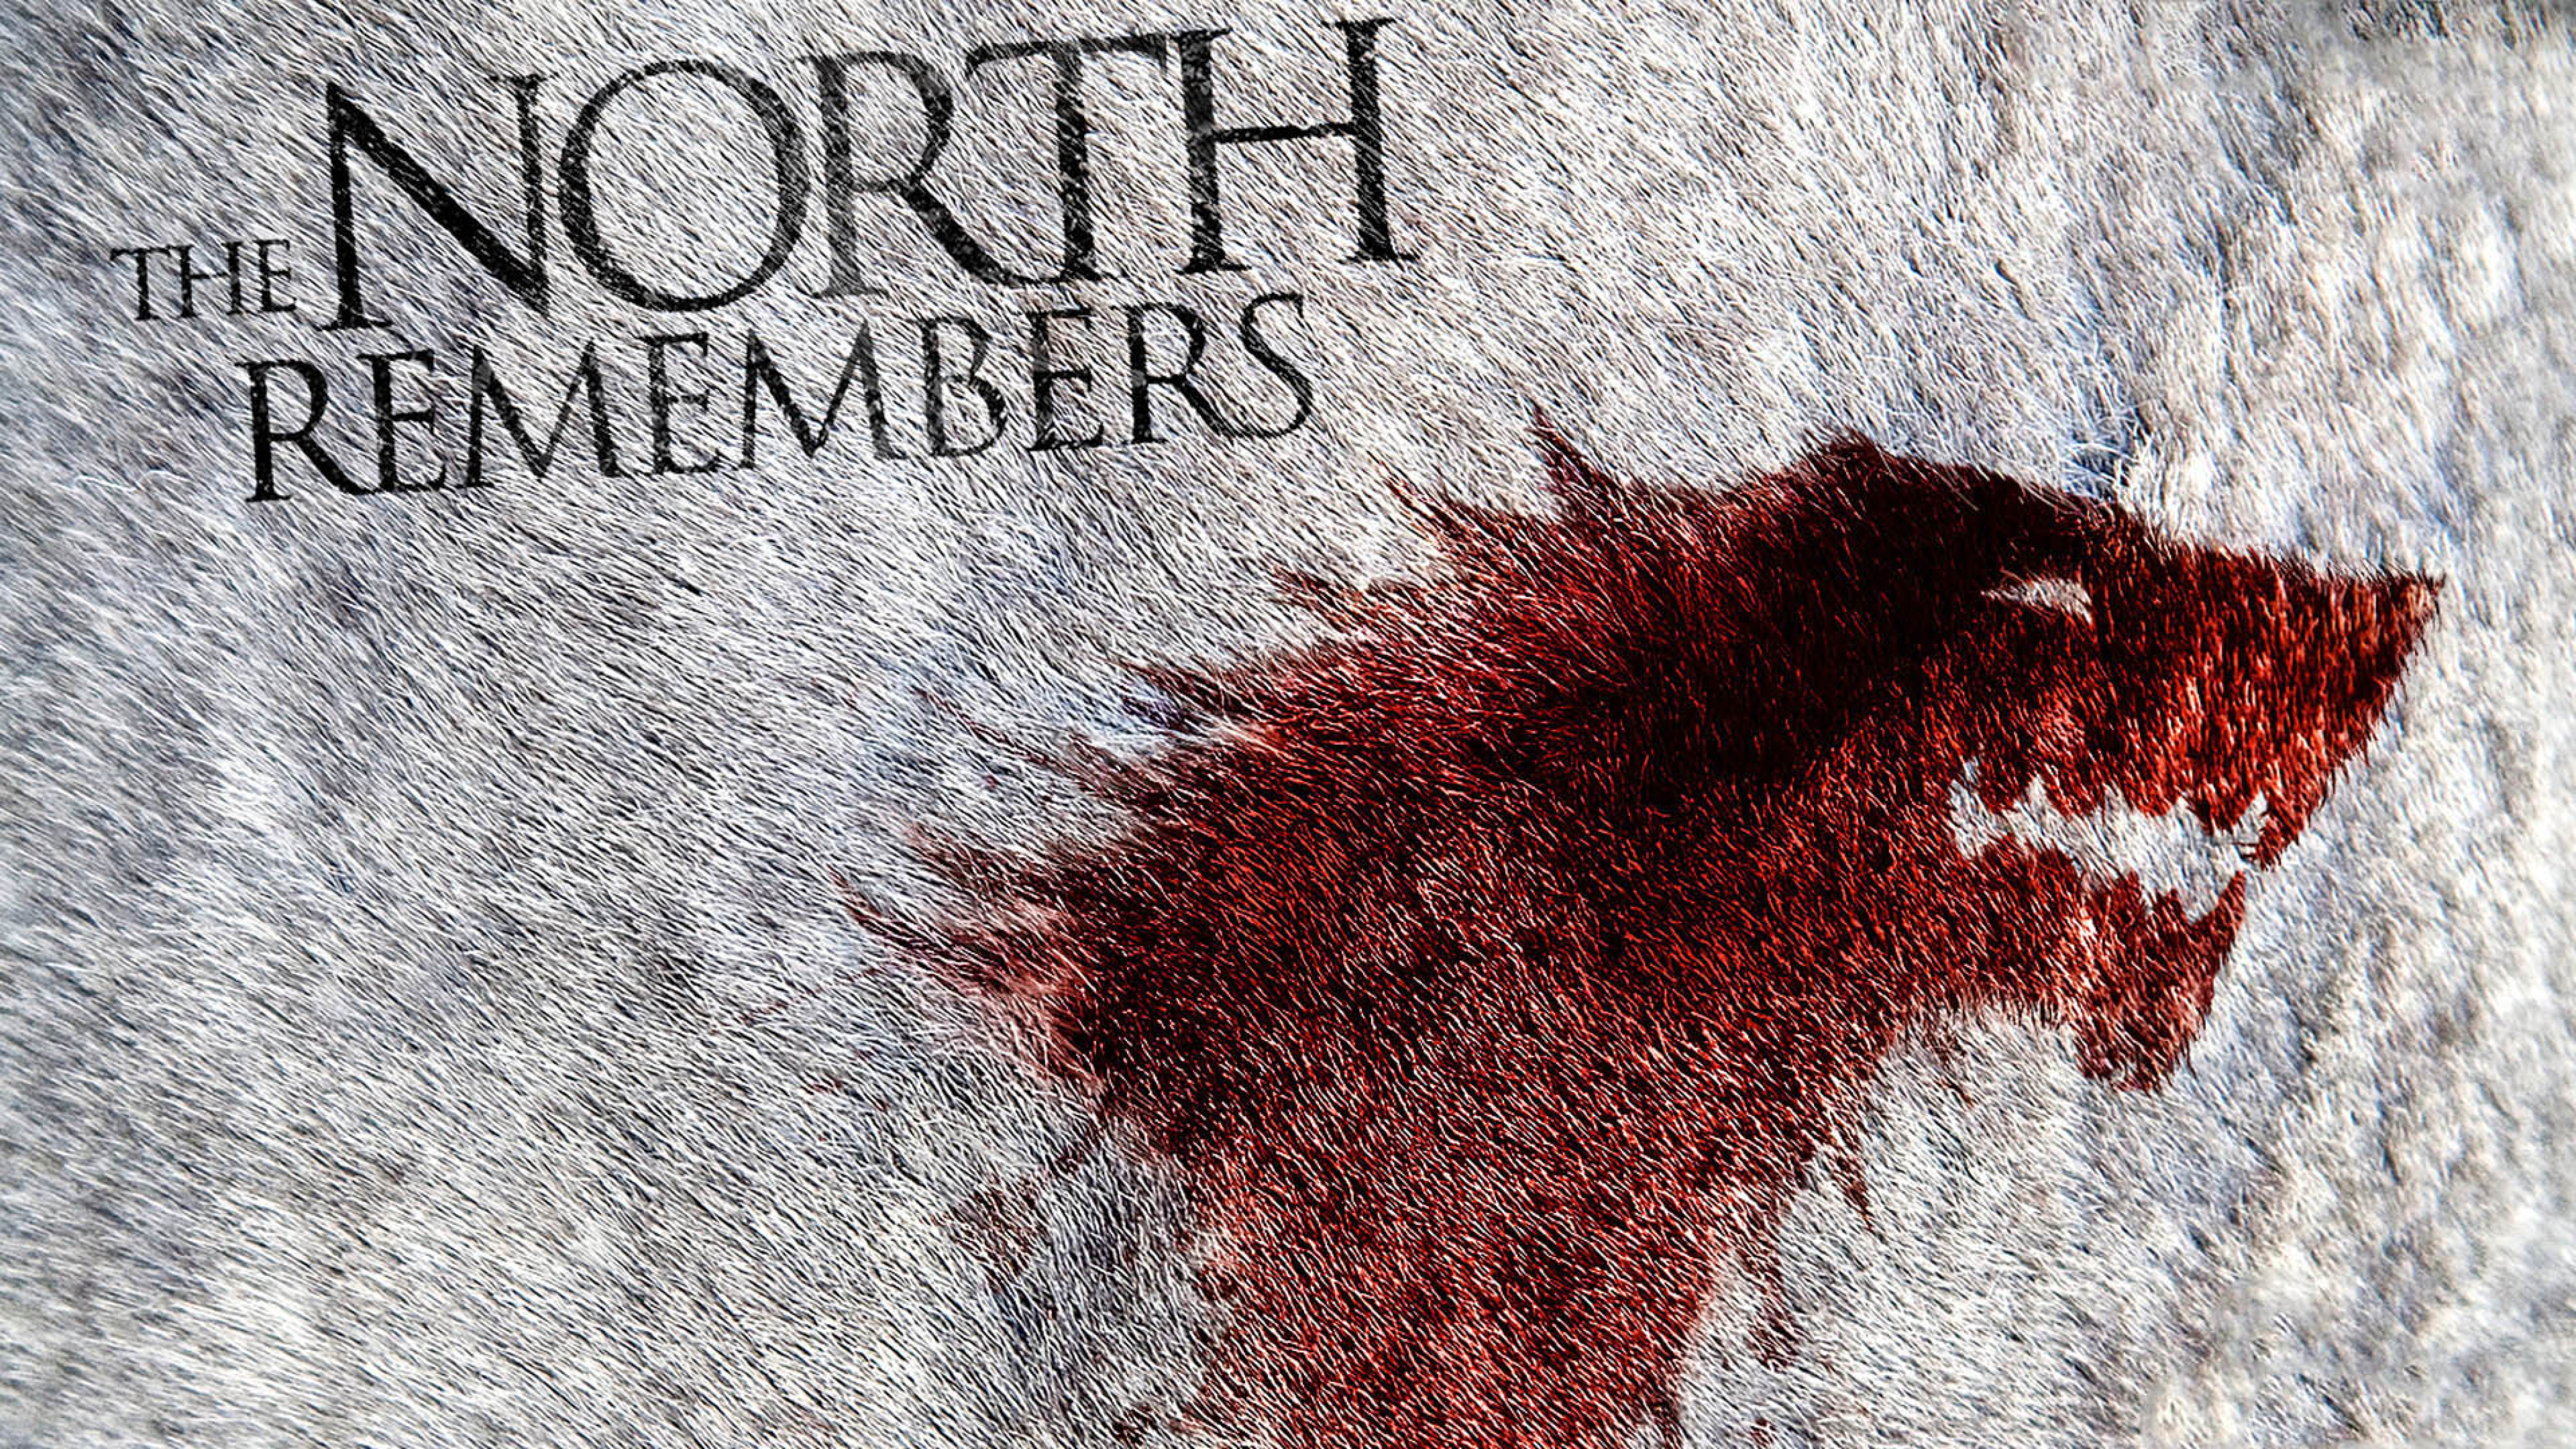 7680x4320 The North Remembers Game Of Thrones Tv Show Wallpaper 8K 7680x4320